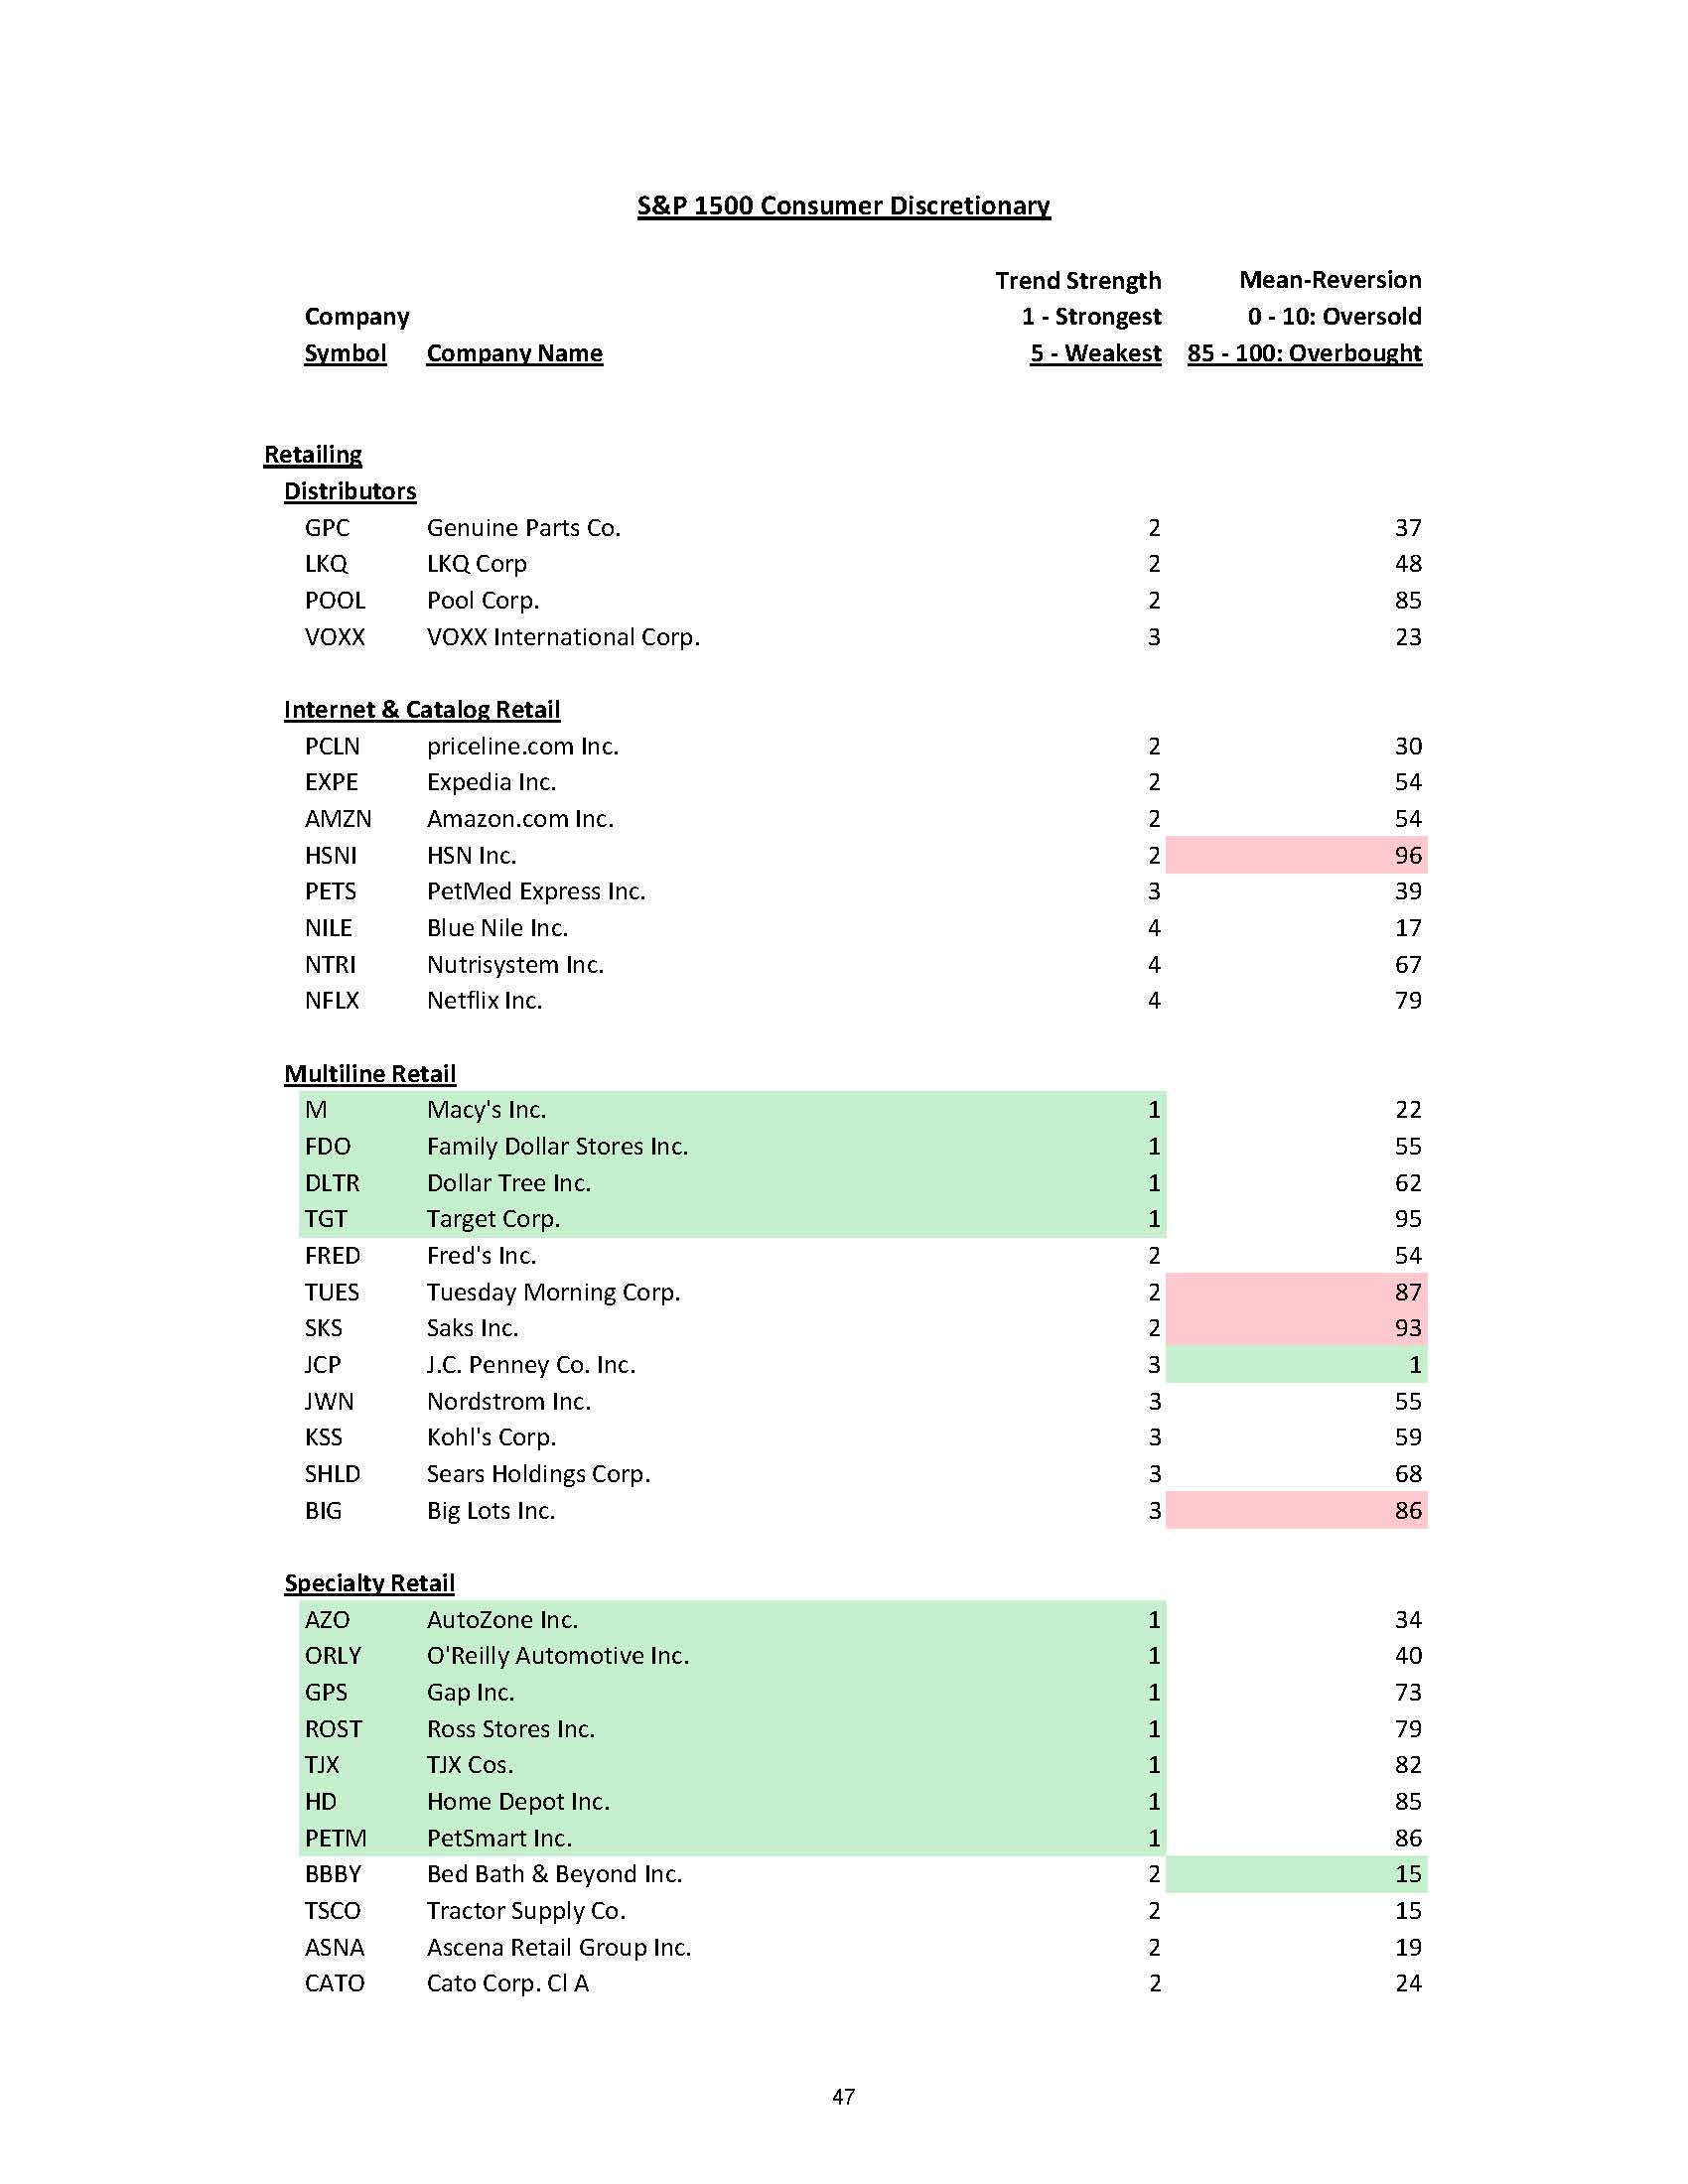 Consumer Discretionary Deep-Dive 07.12.12_Page_47